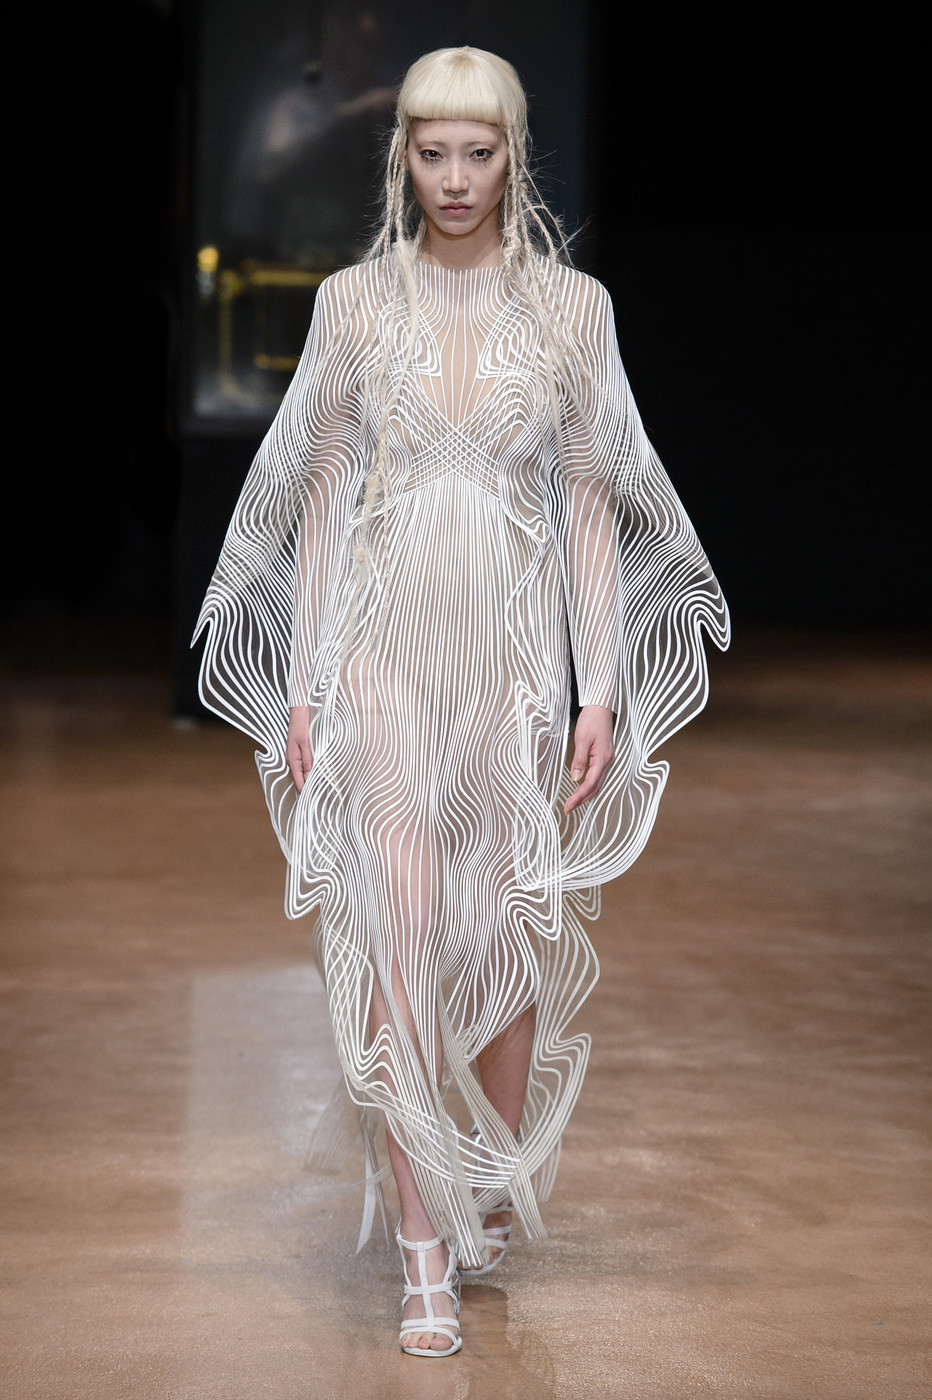 Iris van herpen at couture fall 2017 livingly for Couture 2017